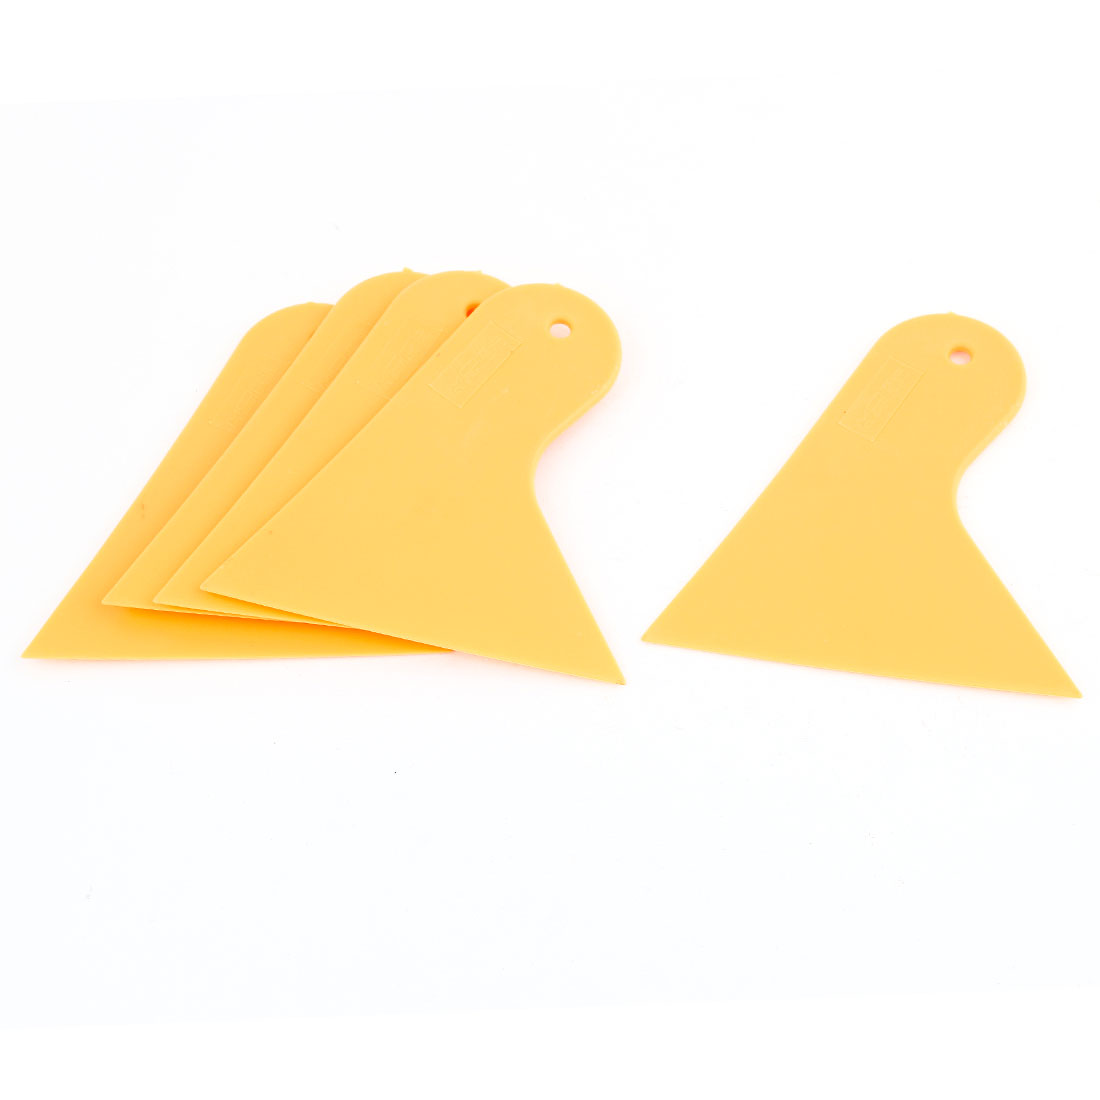 5 Pcs Cars Yellow Plastic Blade Window Windshield Film Scraper